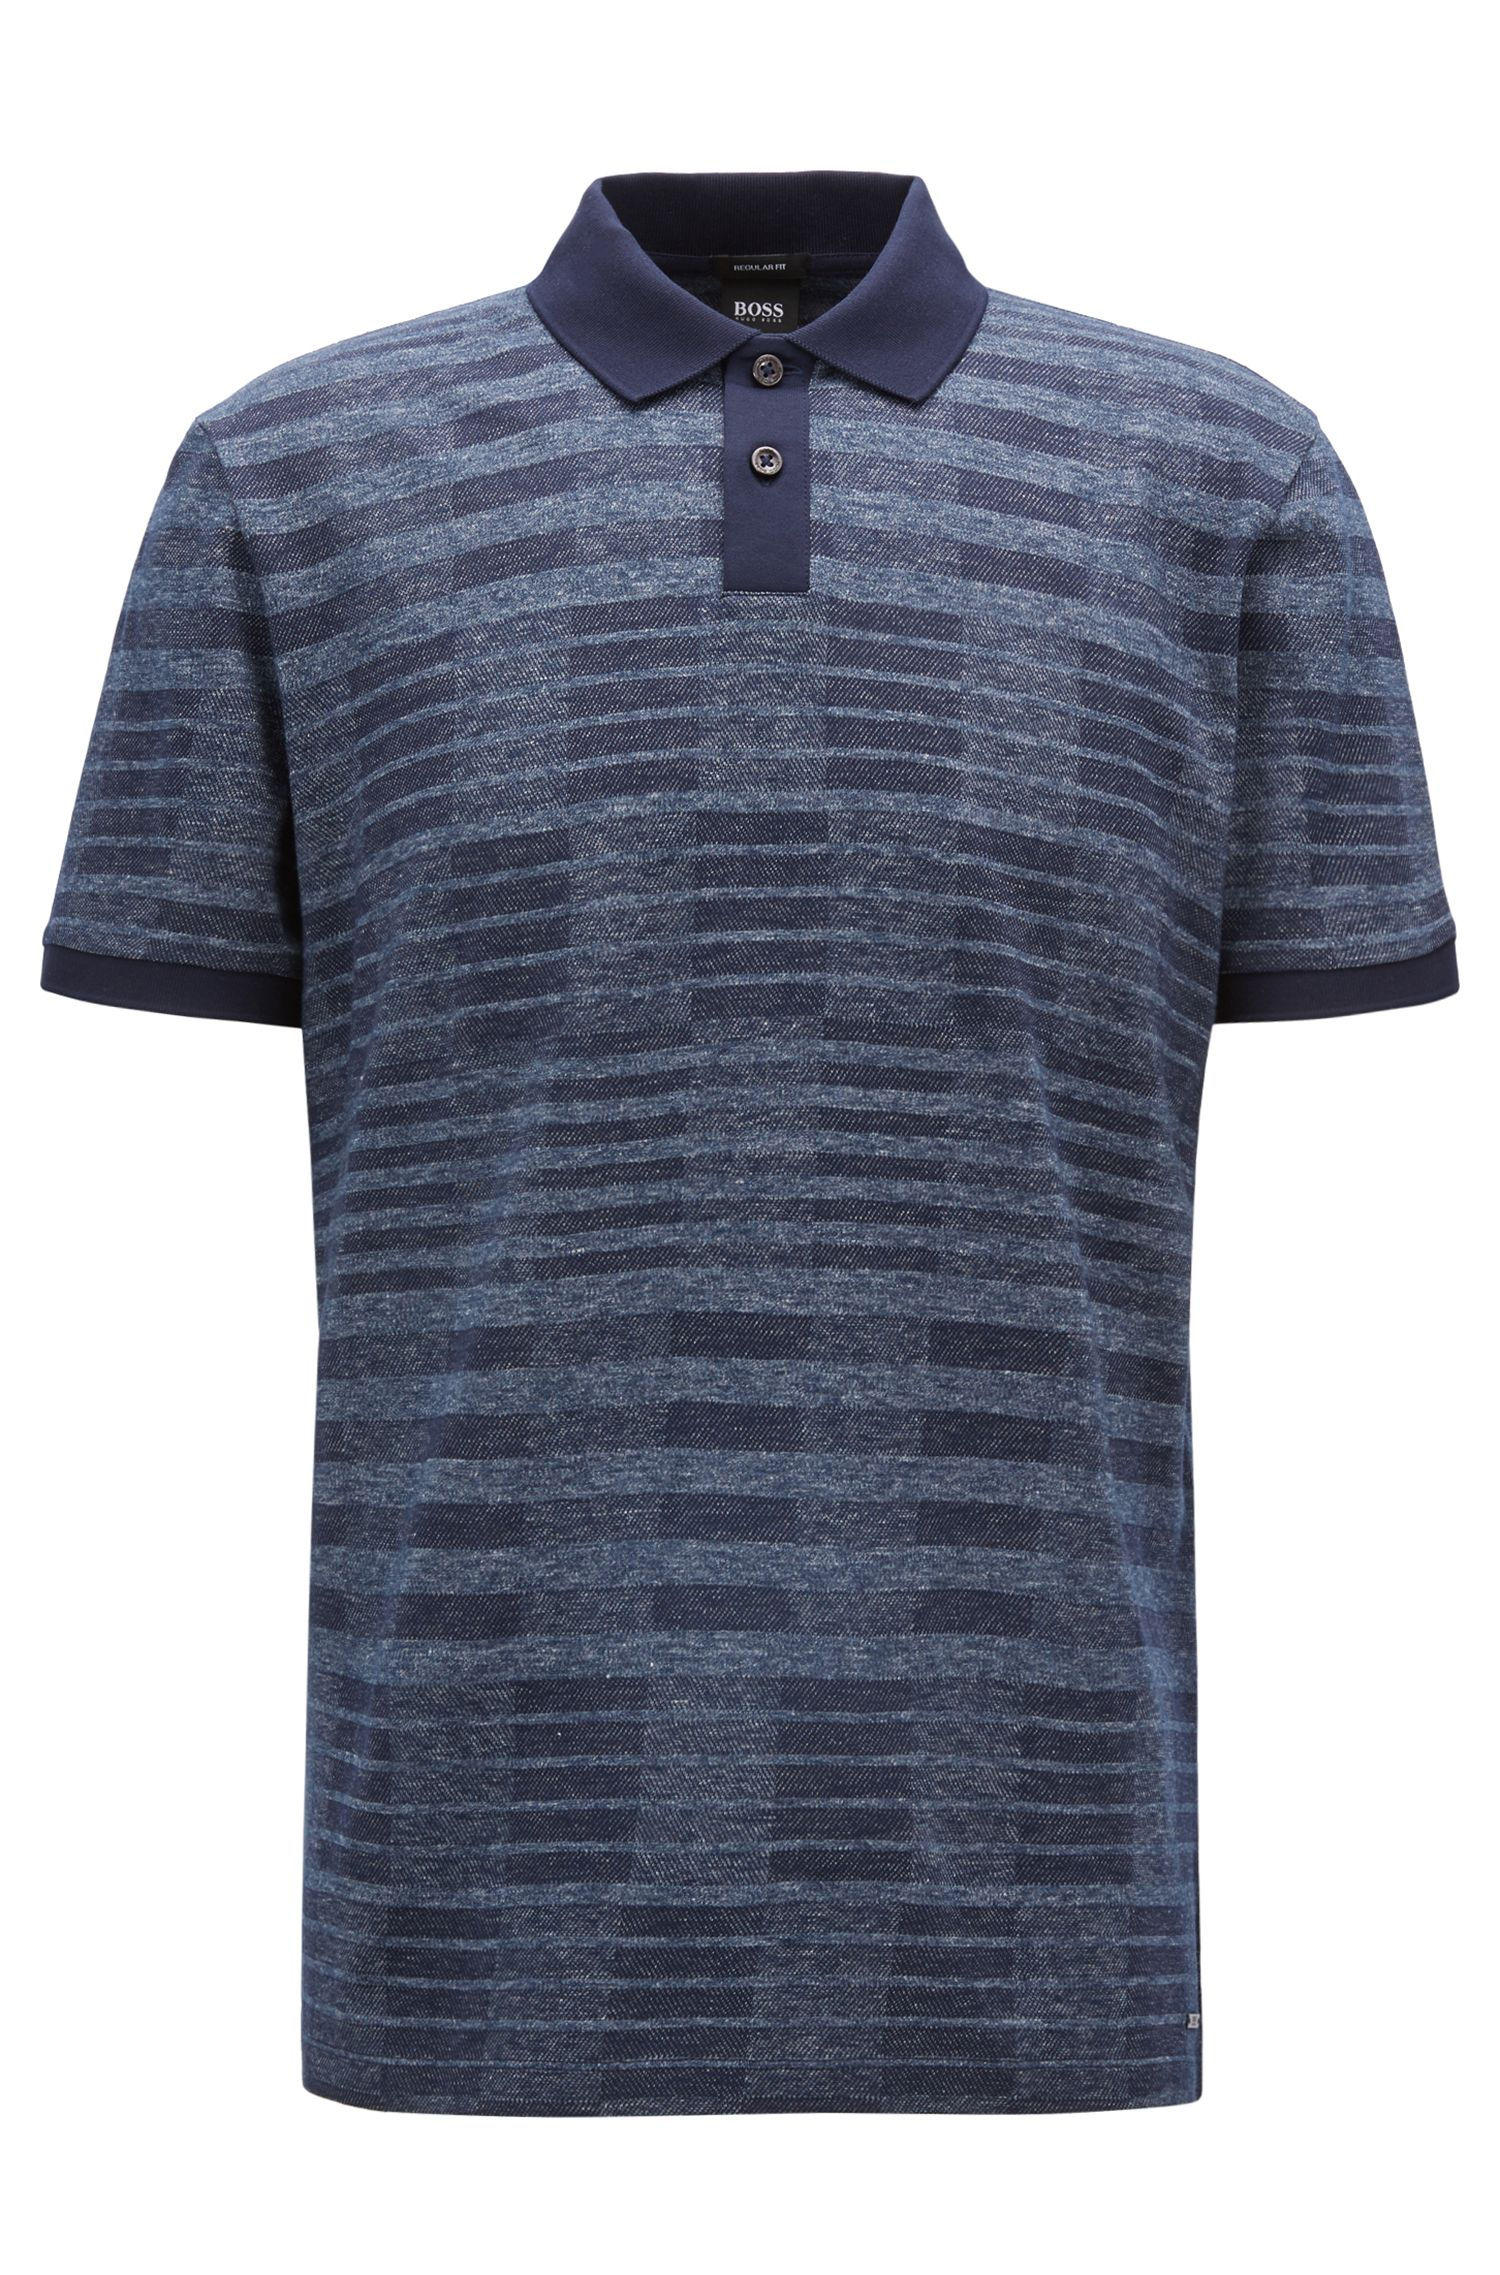 Denim-look polo shirt with Bauhaus-inspired pattern, Blue